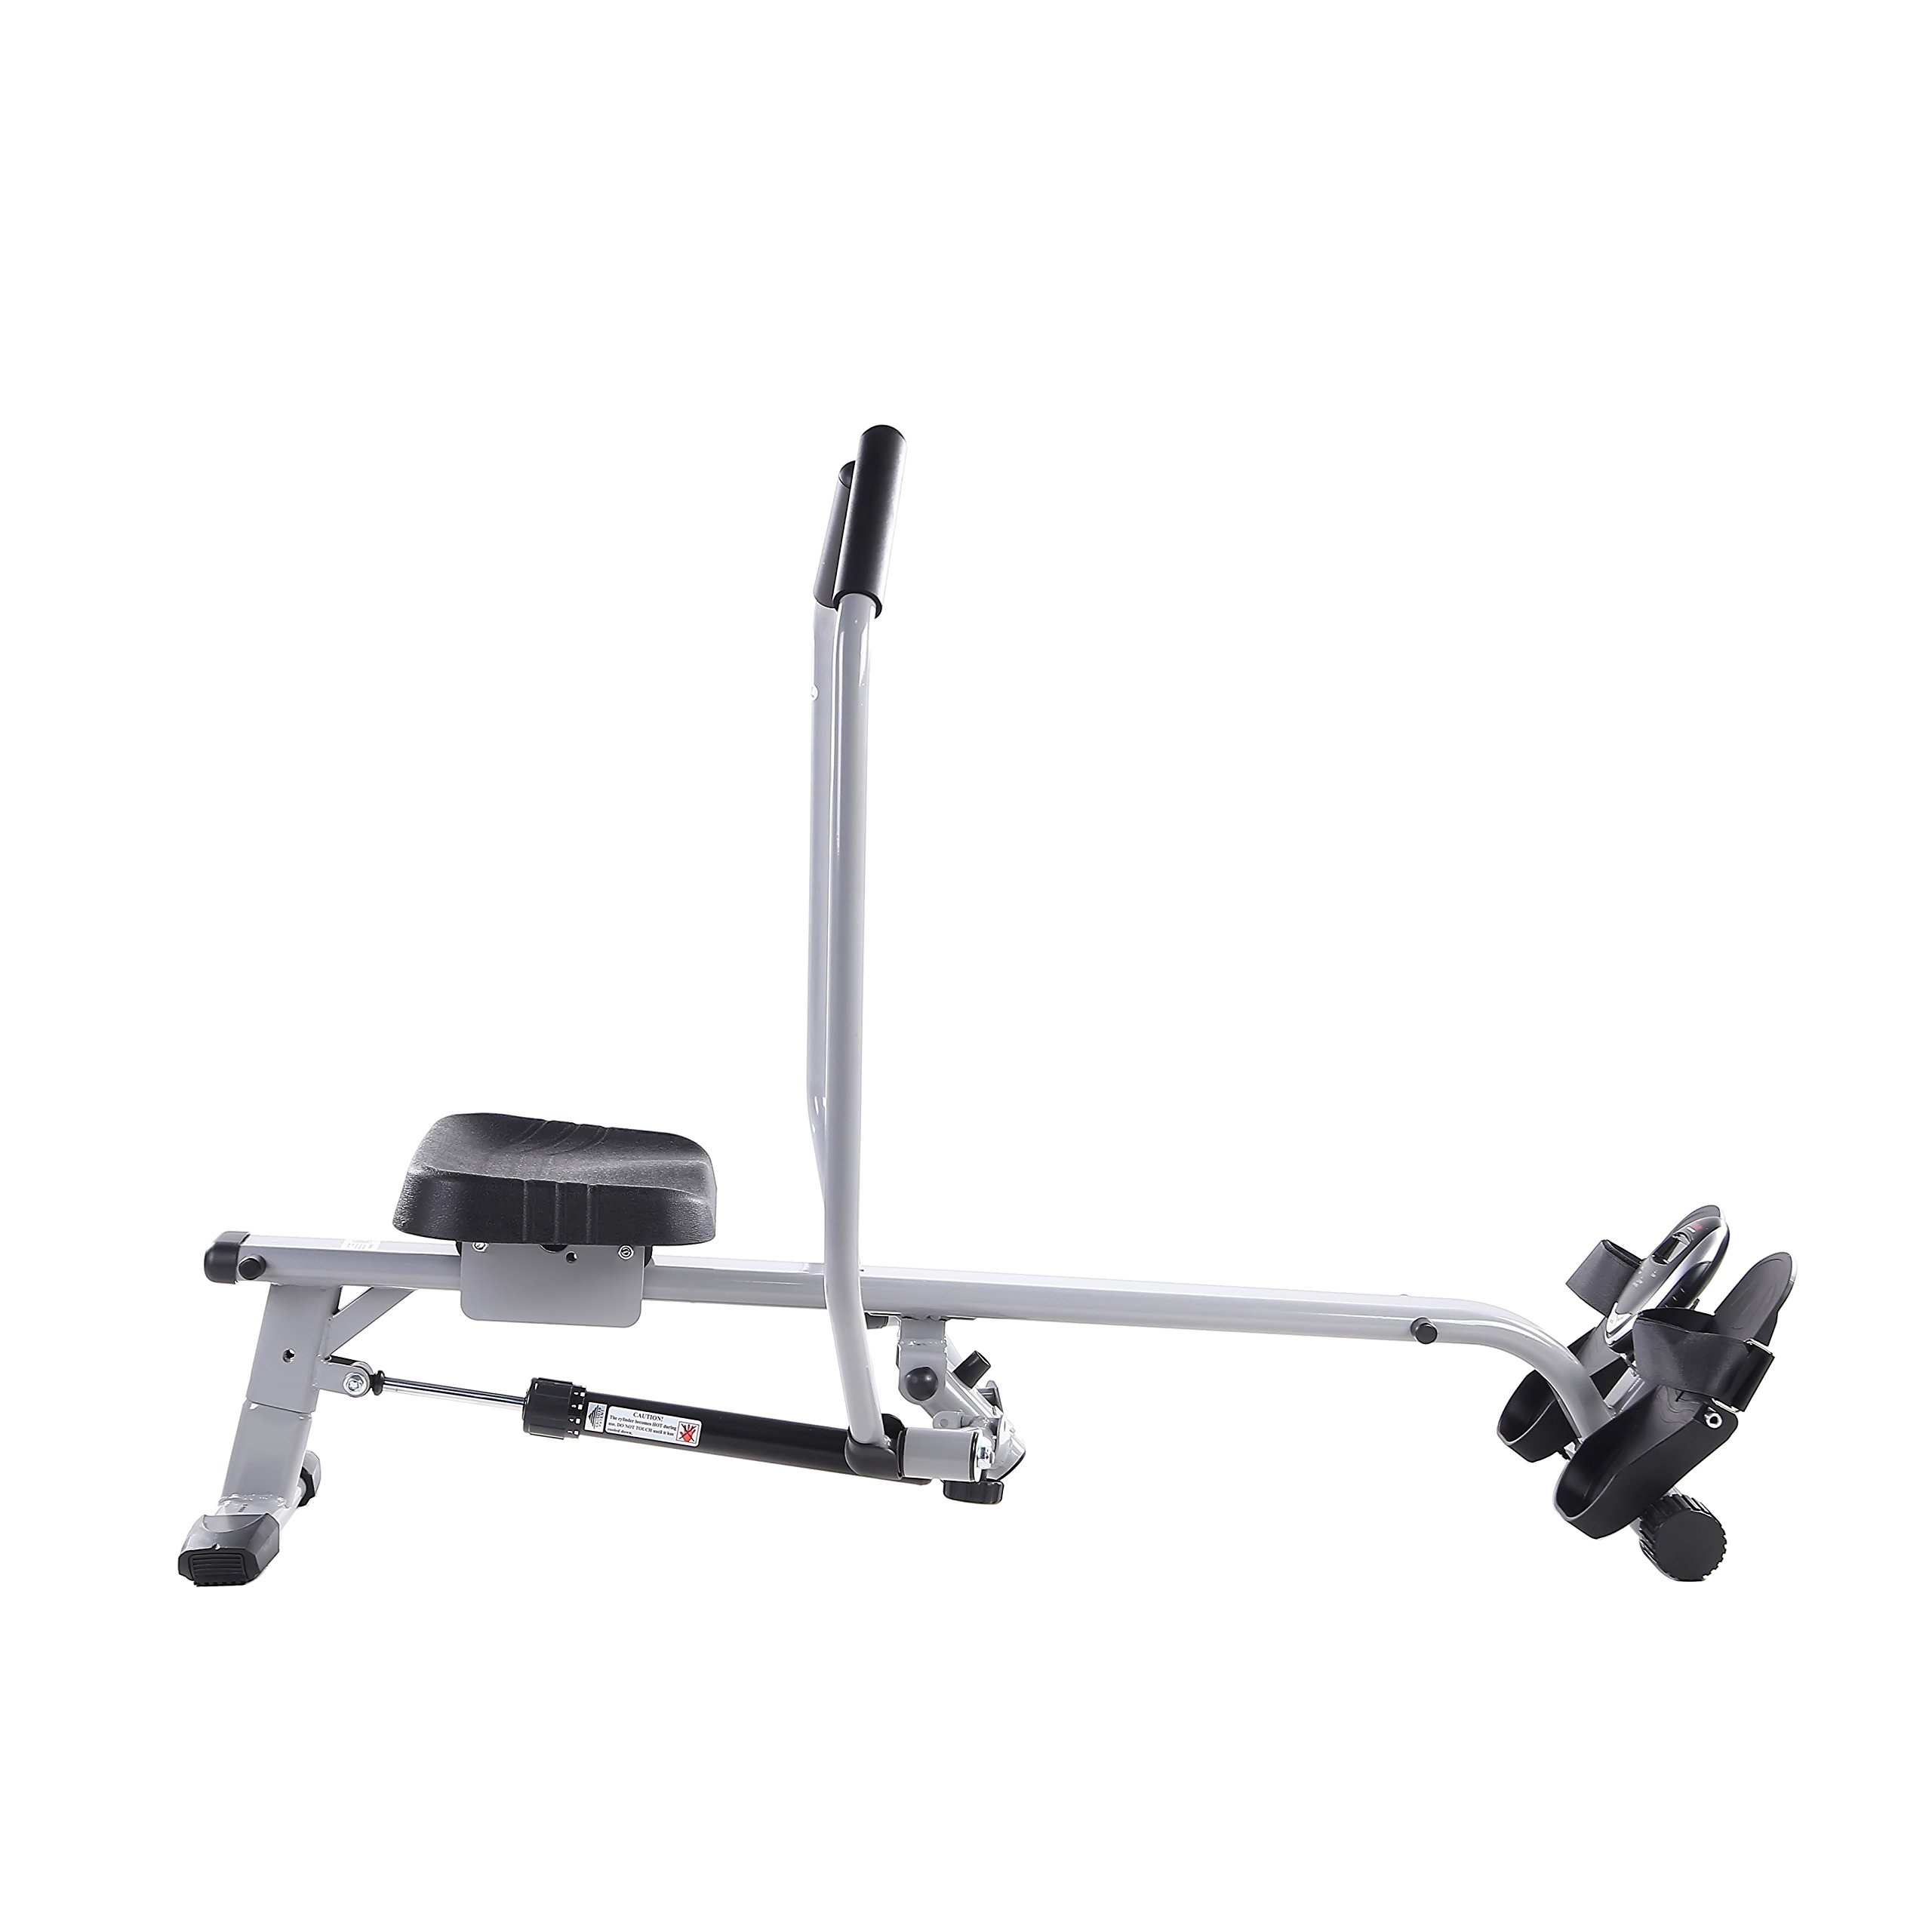 Sunny Health & Fitness SF-RW5639 Full Motion Rowing Machine Rower w/ 350 lb Weight Capacity and LCD Monitor by Sunny Health & Fitness (Image #13)